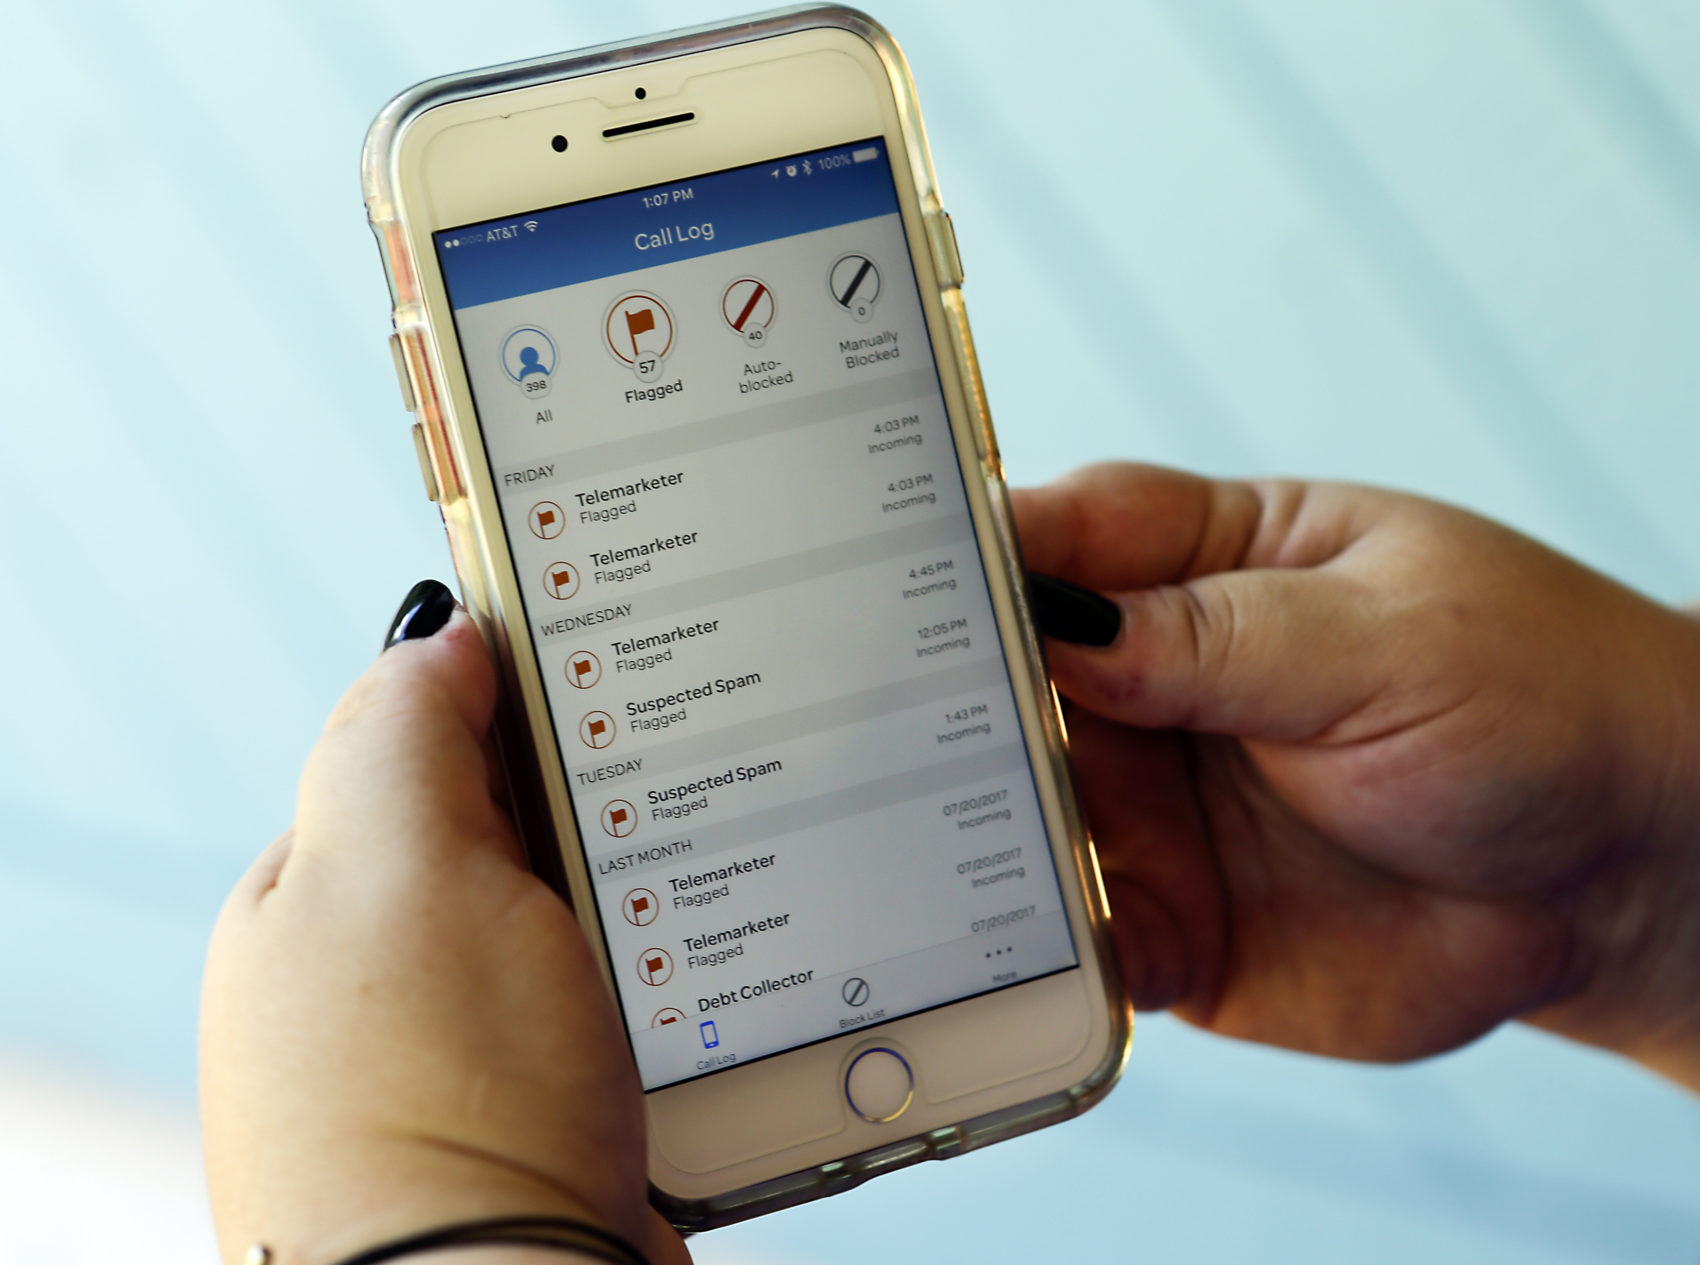 Fed Up With Robocalls? Federal Trade Commission Says It's